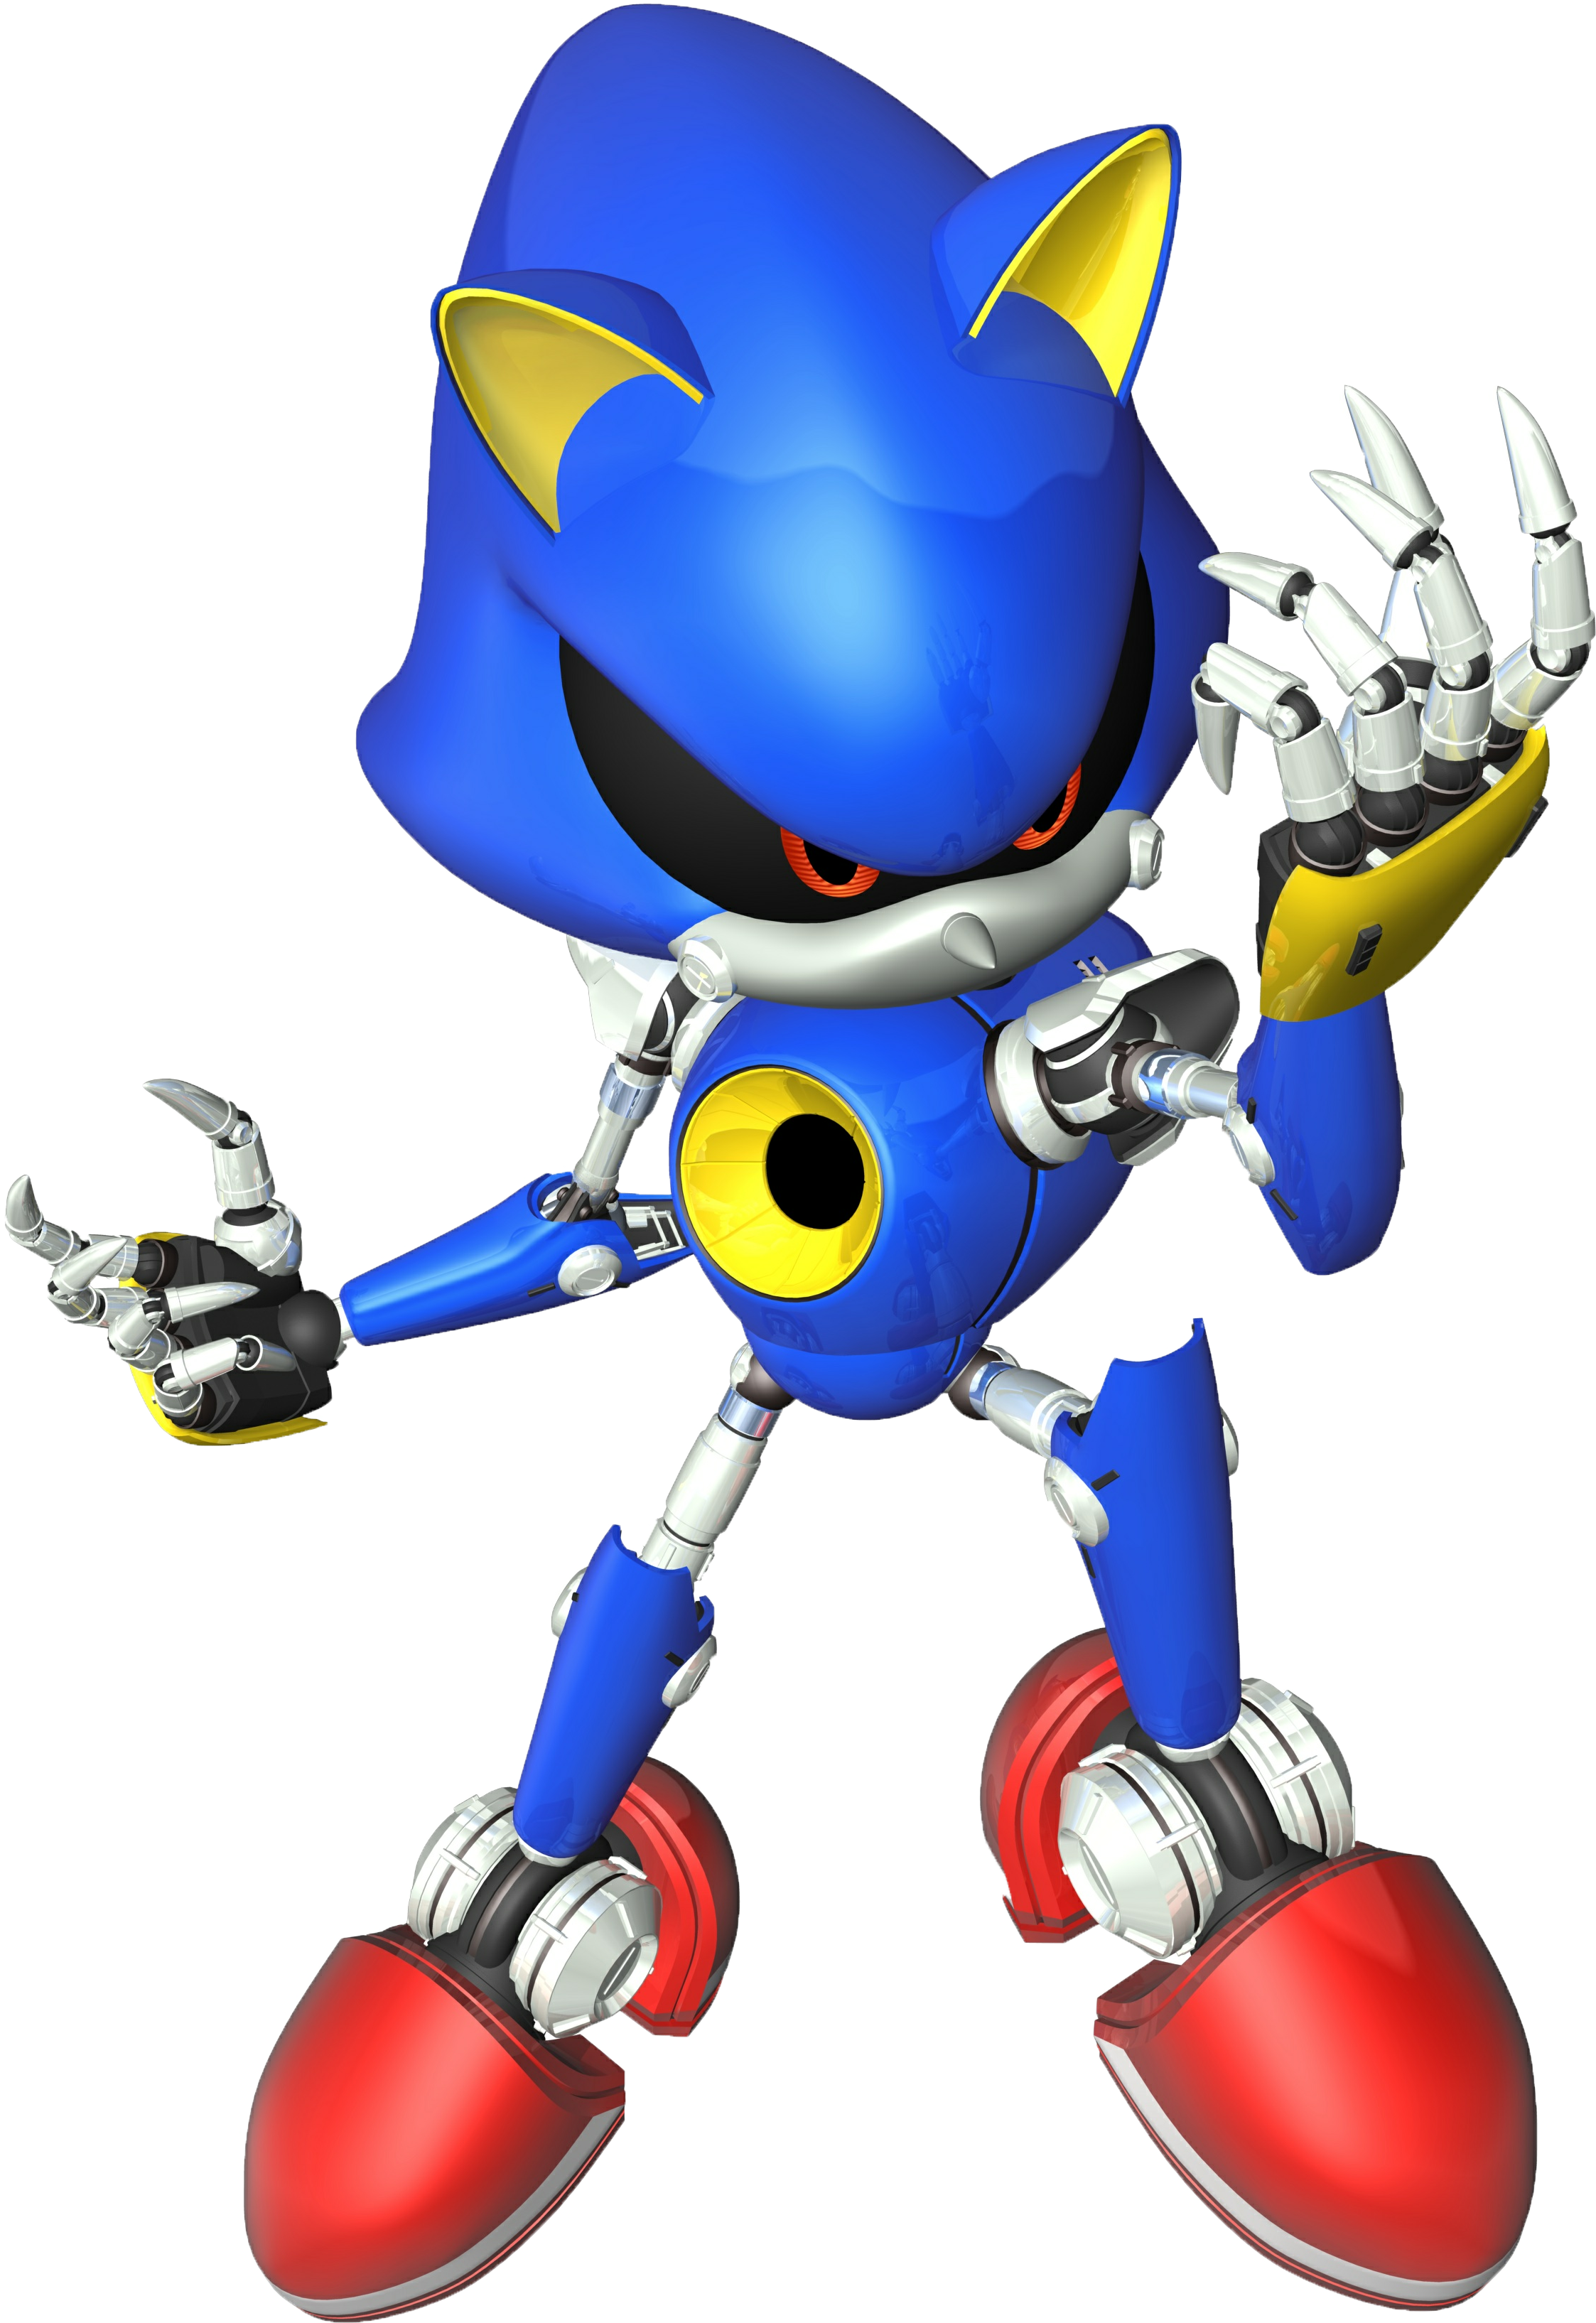 Metal Sonic (Mario & Sonic At The 2012 Olympic Games